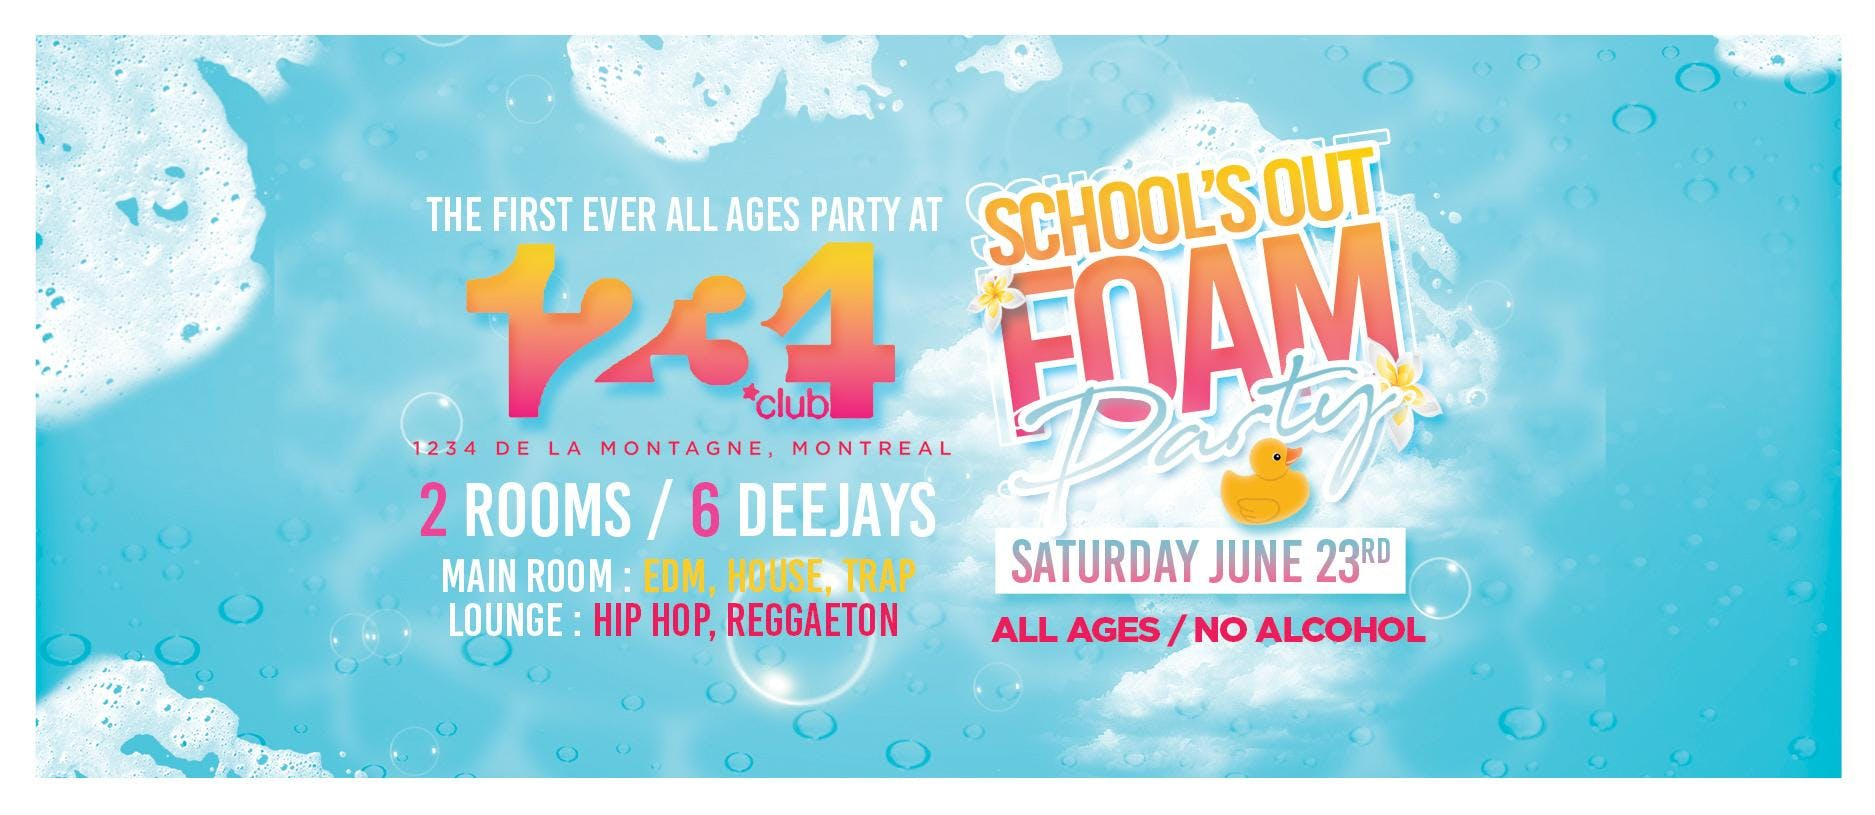 SCHOOL'S OUT FOAM PARTY